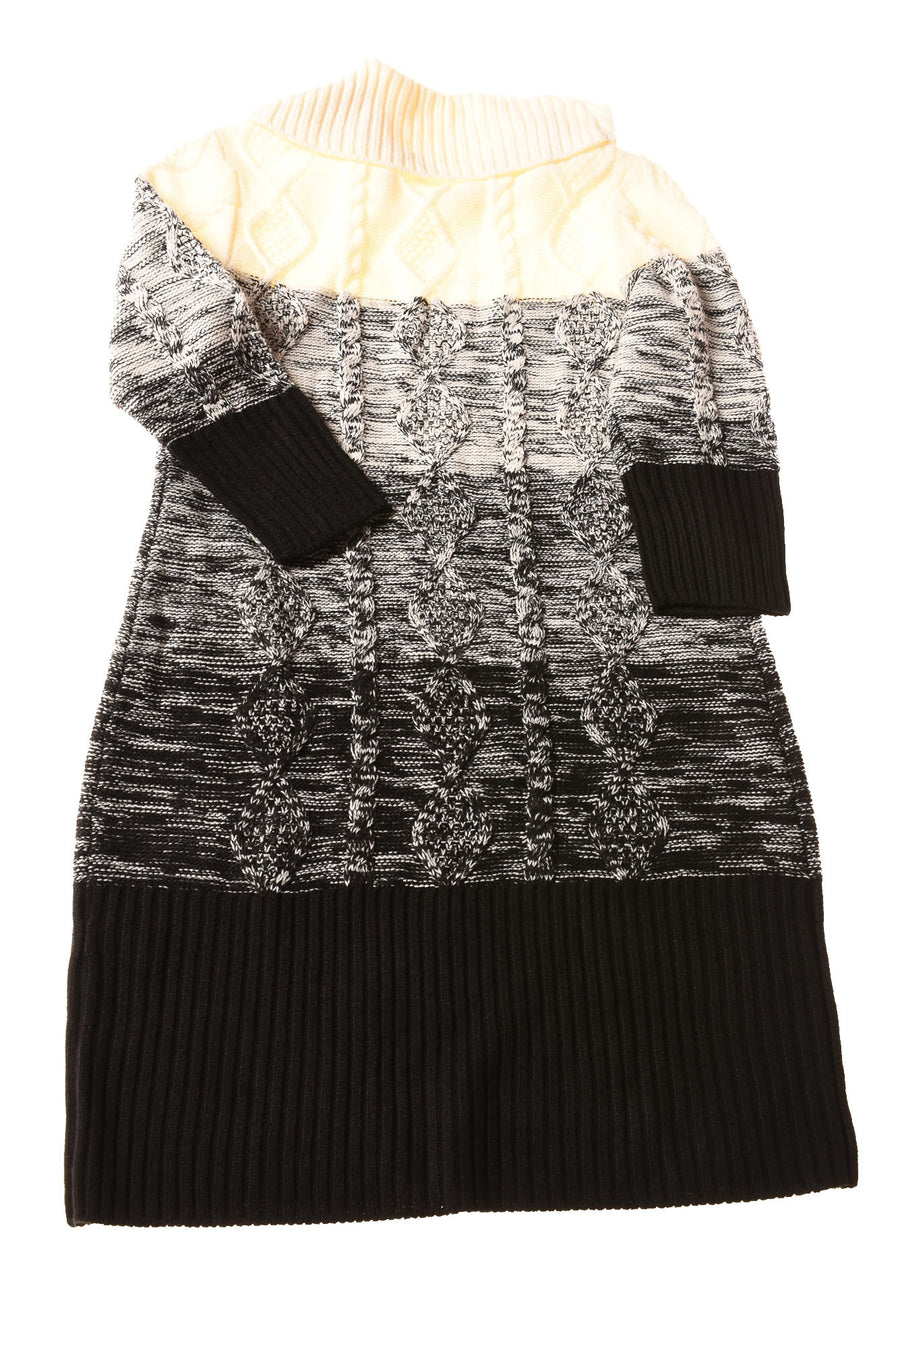 NEW Sandra Darren Women's Dress Large Black & White